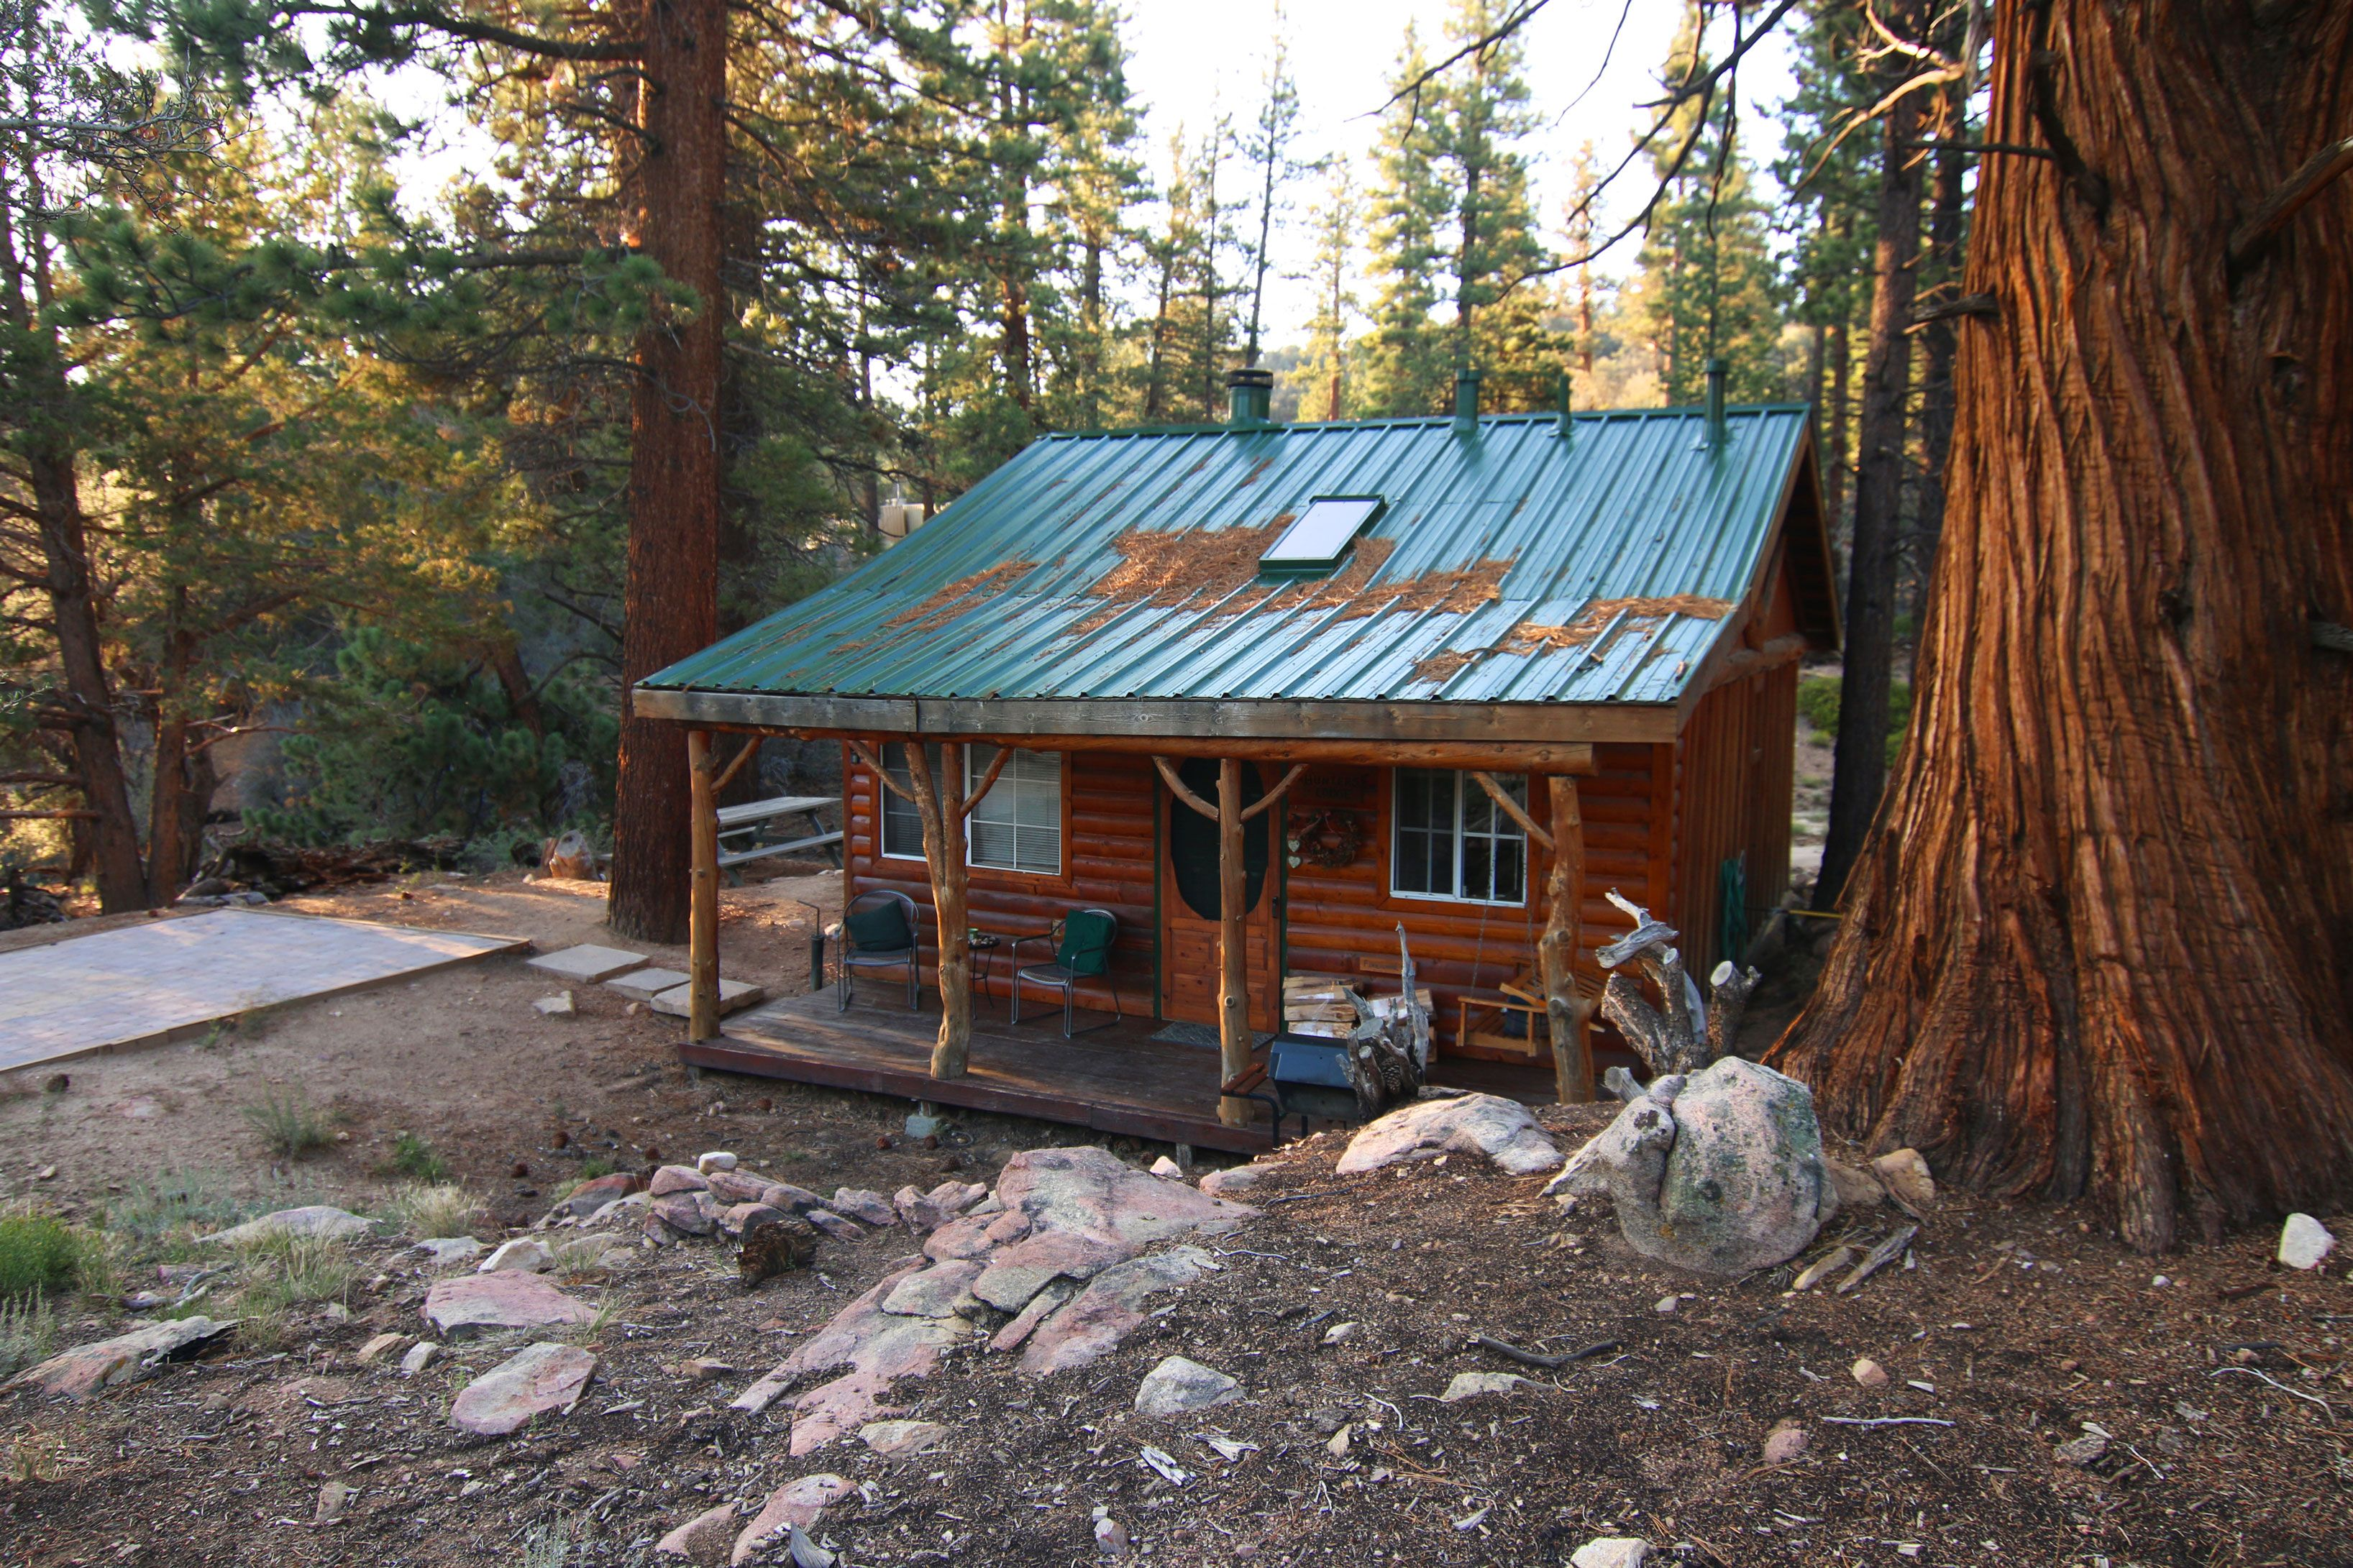 the rentals for mammoth bear monney rent cheap vacation chalet cabins big chalets cabin